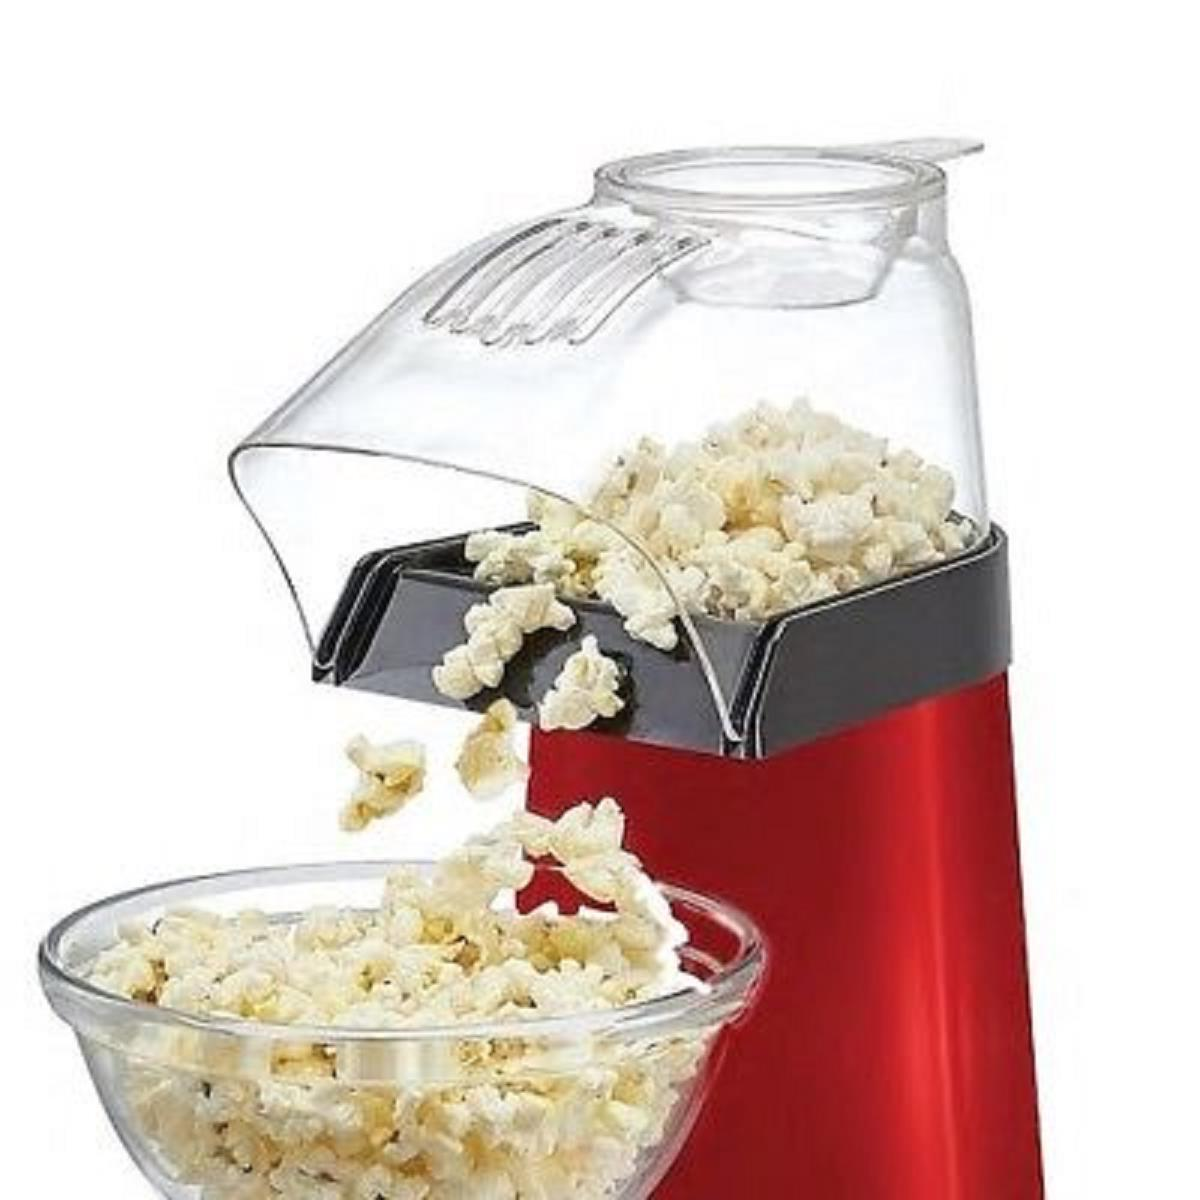 red 16 cup hot air popcorn popper